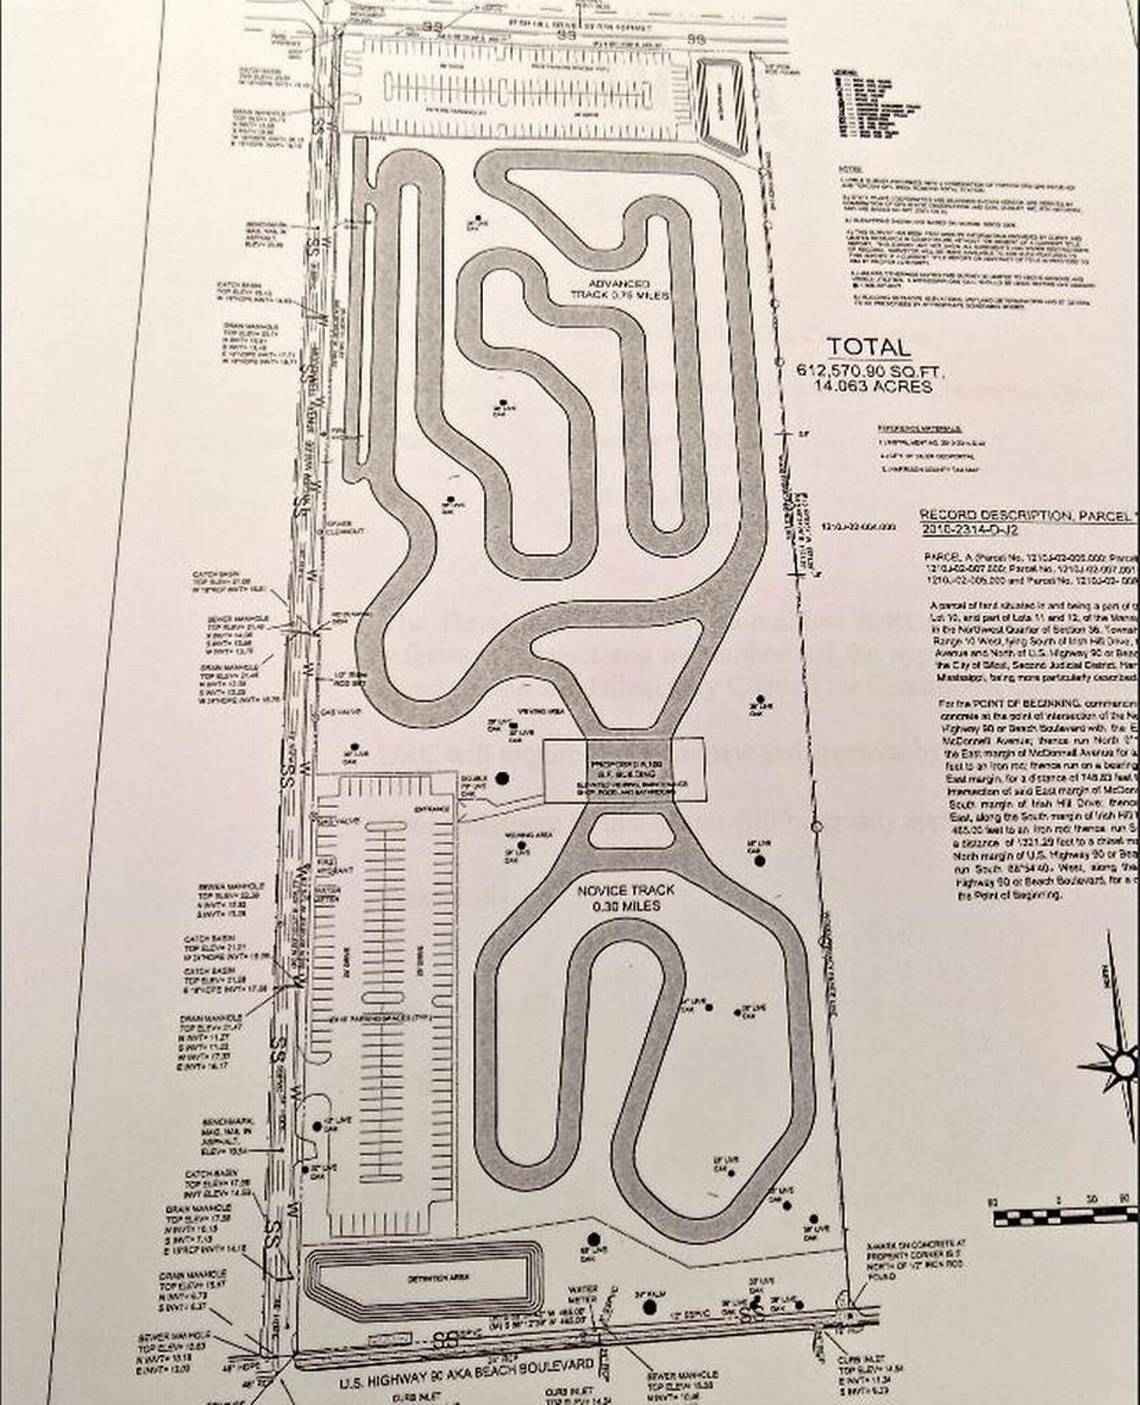 mississippi kart New Kart Track Coming to Biloxi, MS   KartPulse Forums: Quality  mississippi kart